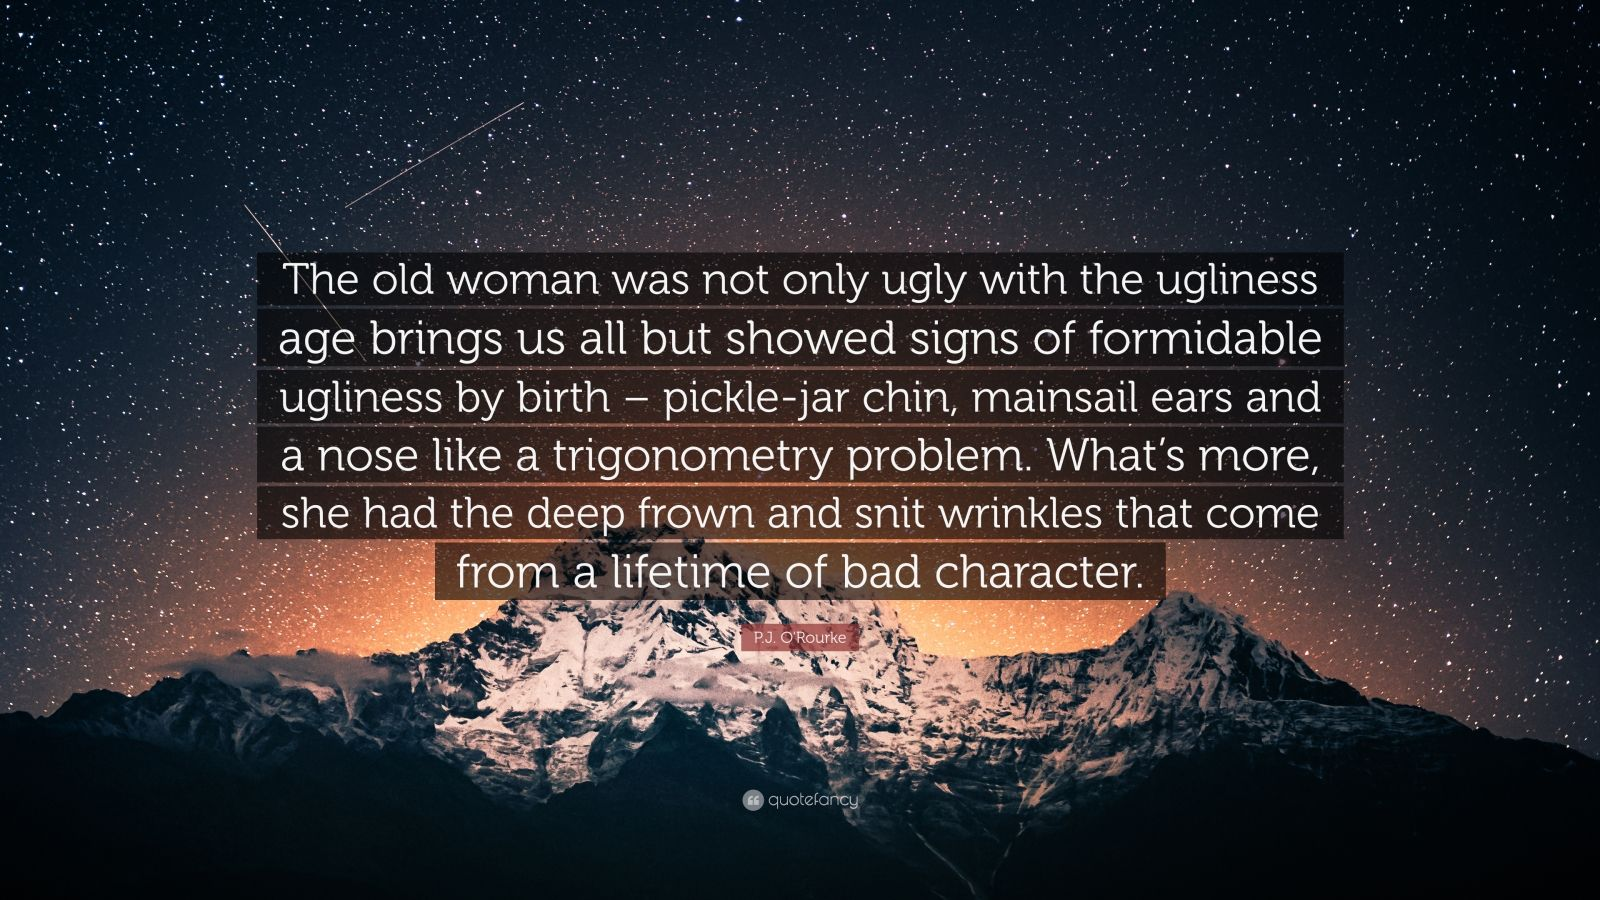 """P.J. O'Rourke Quote: """"The old woman was not only ugly with the ugliness age brings us all but showed signs of formidable ugliness by birth – pickle-jar chin, mainsail ears and a nose like a trigonometry problem. What's more, she had the deep frown and snit wrinkles that come from a lifetime of bad character."""""""